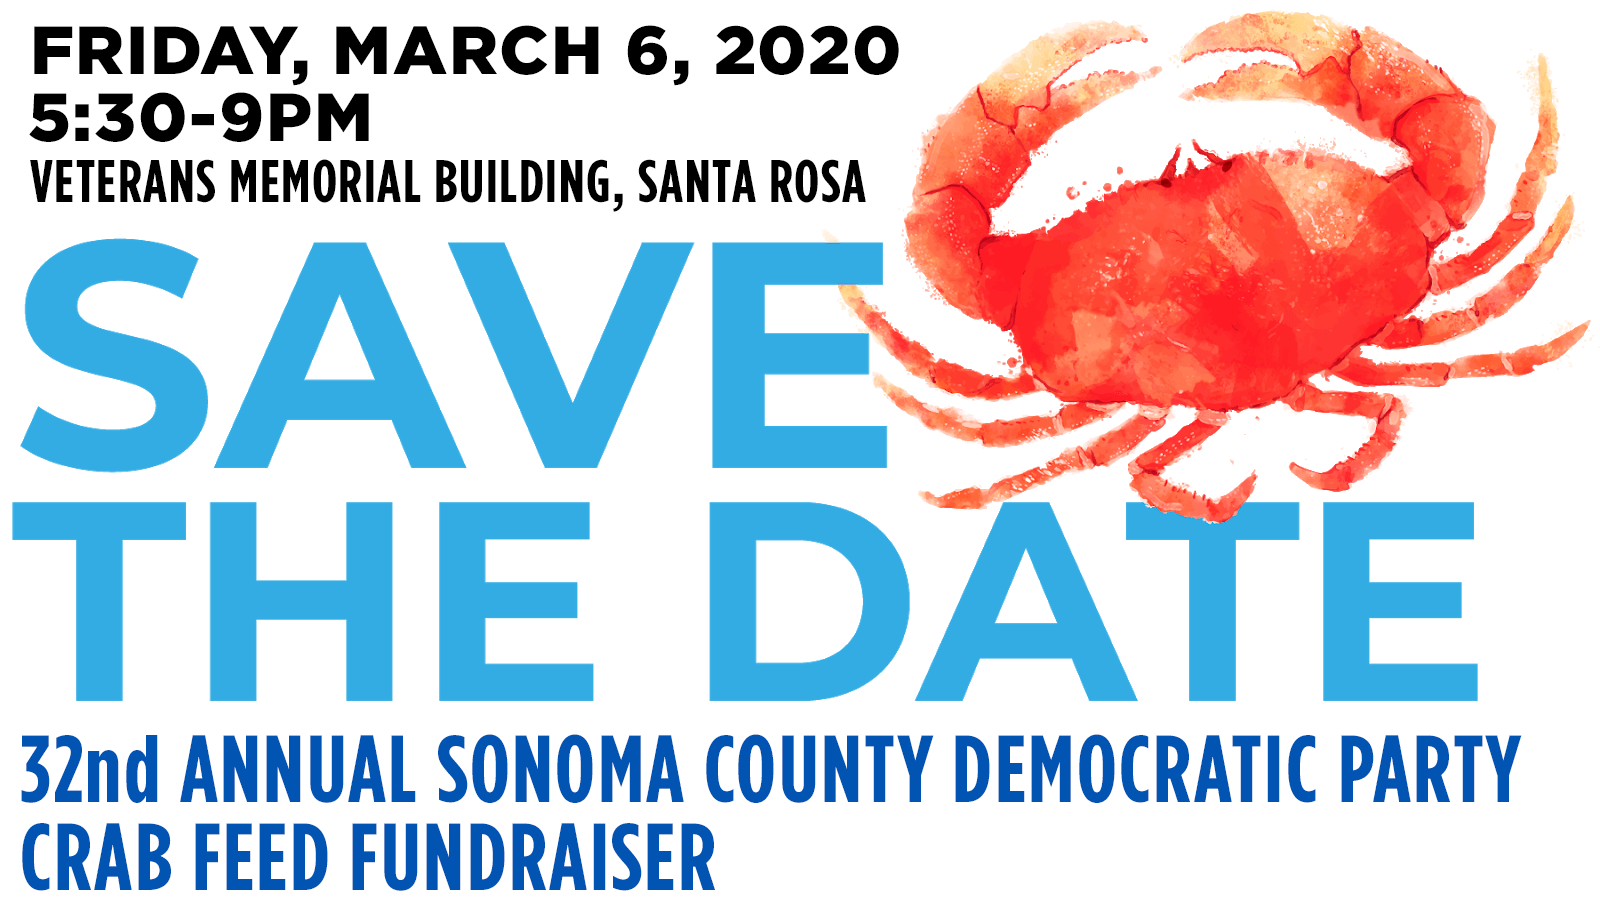 Save the Date - Crab Feed